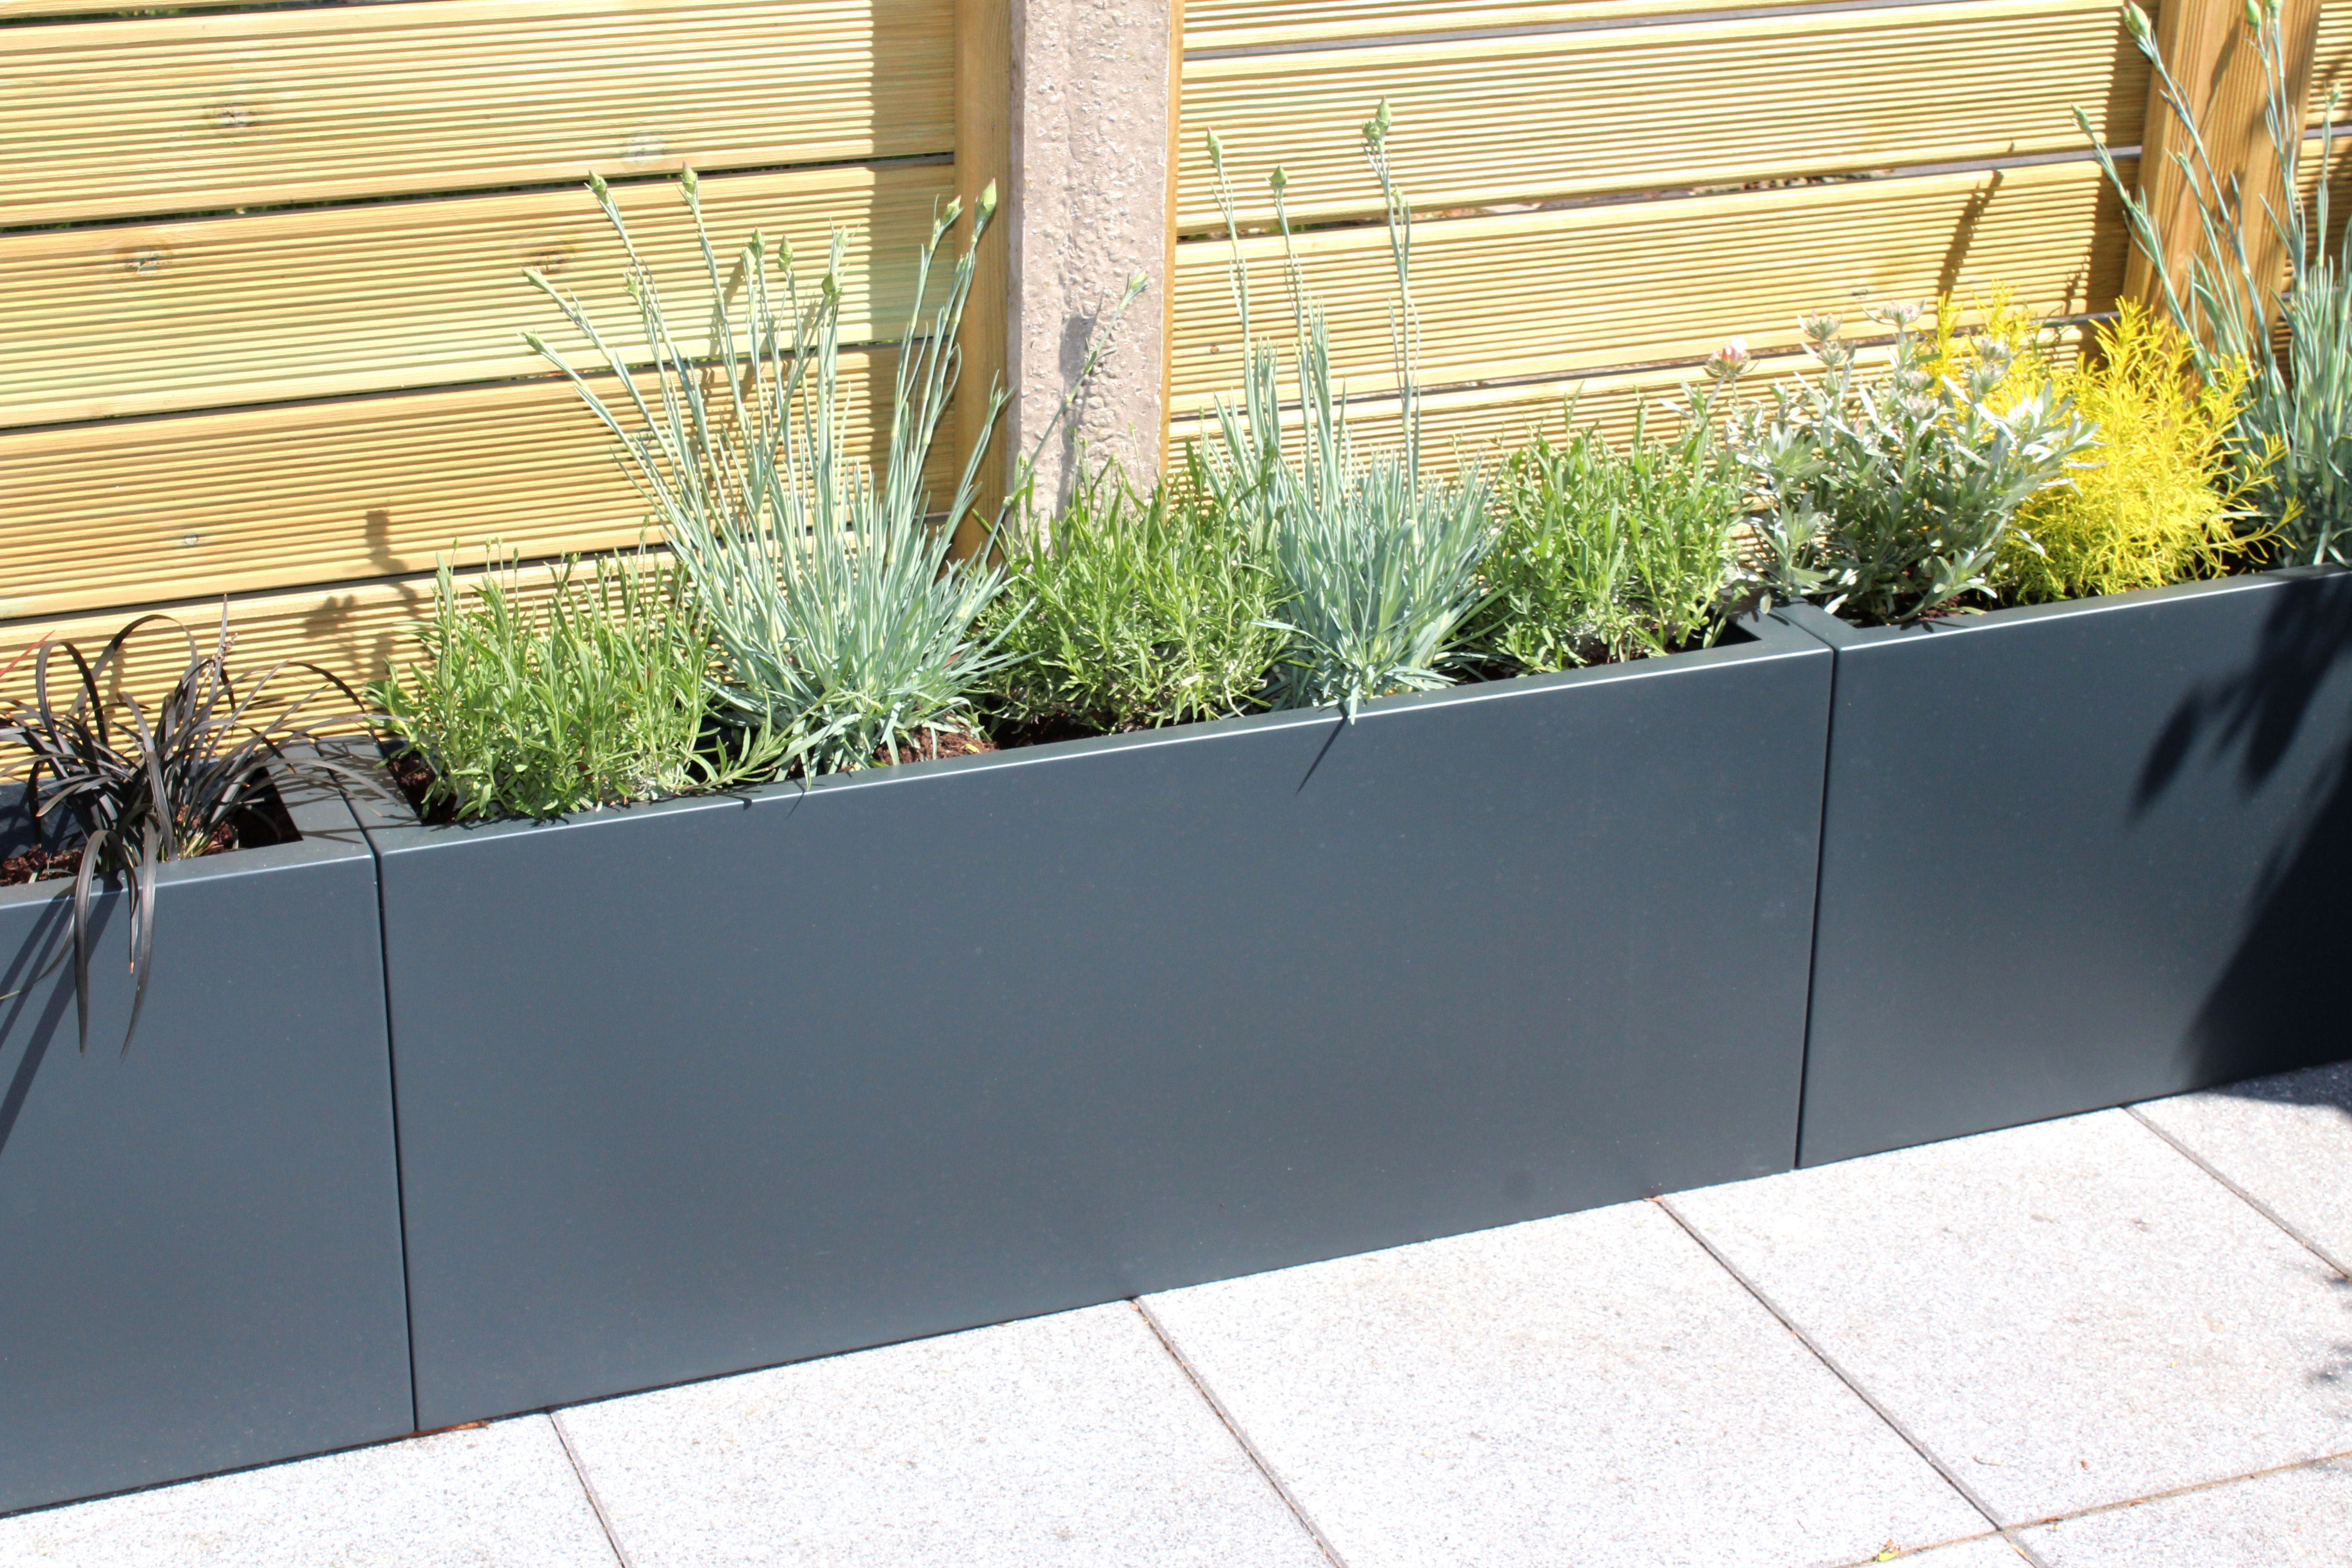 Grp Planters In Ral Colour Used As A Raised Boarder For Planting Trough Planters Outdoor Planters Large Planters